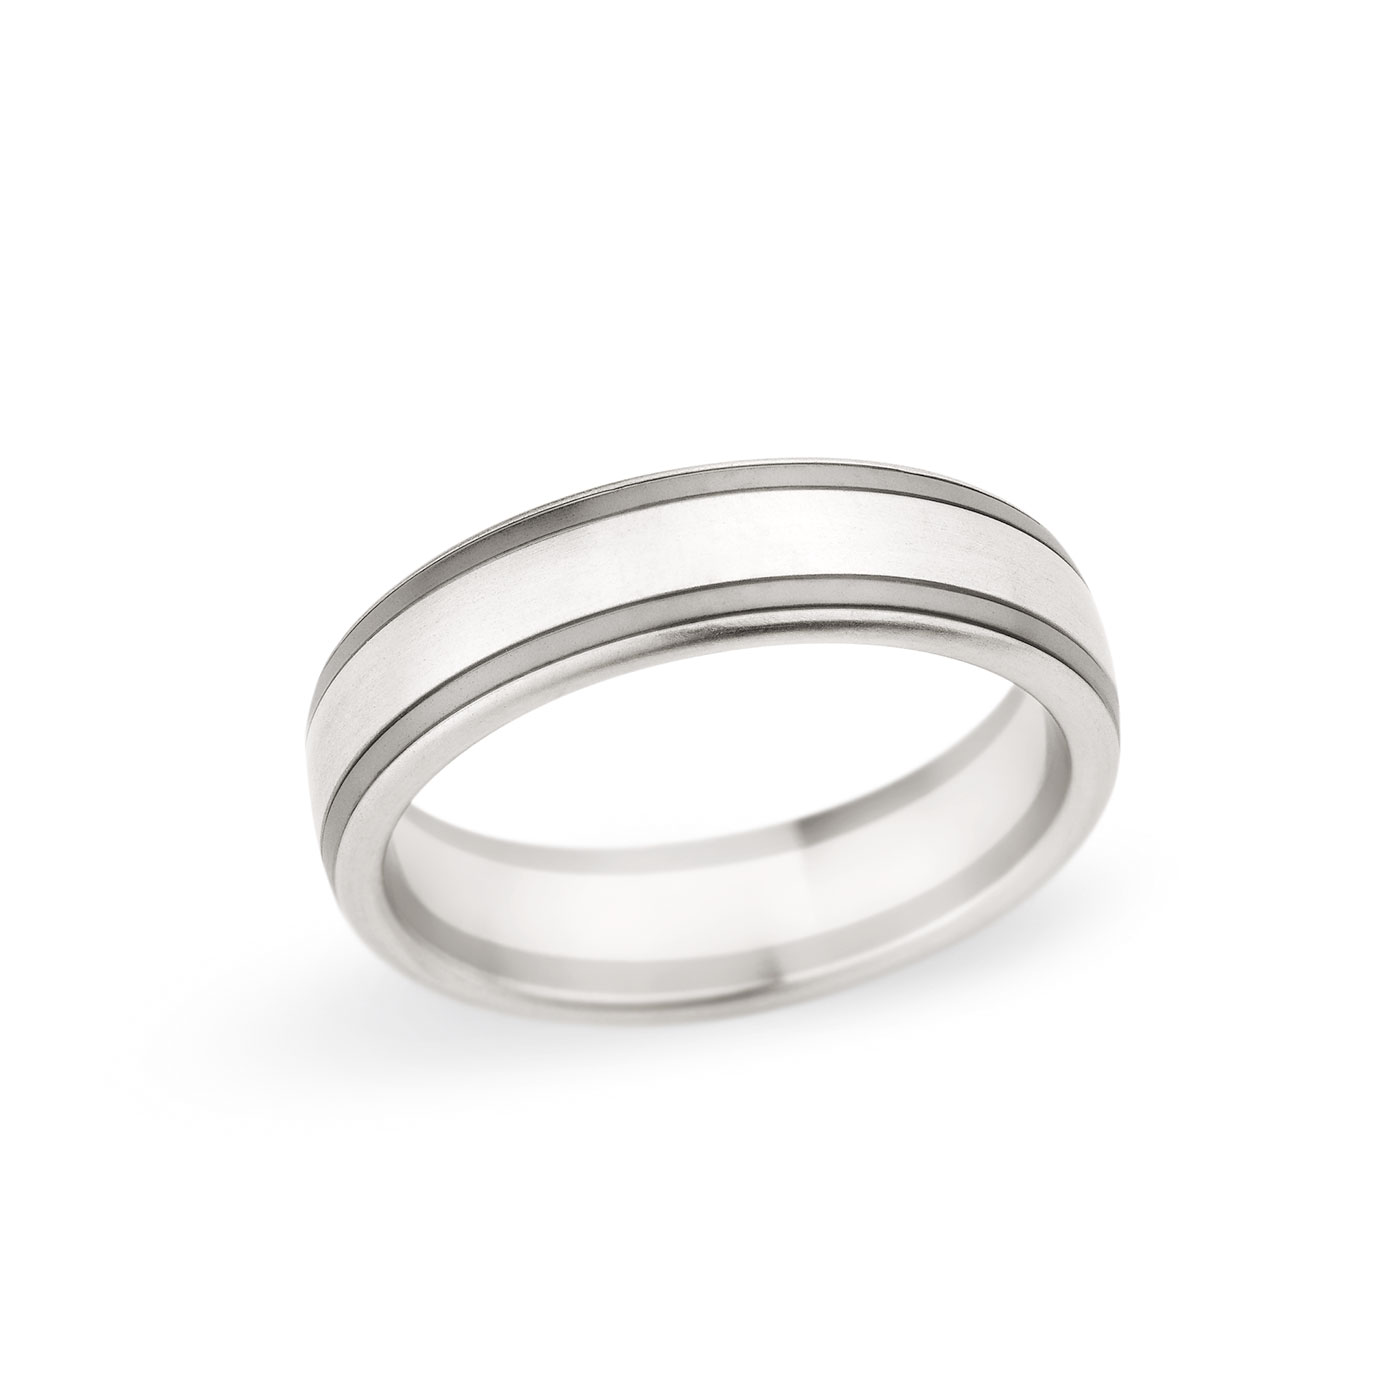 Christian Bauer Traditional Two-Tone 6.0mm Band Image